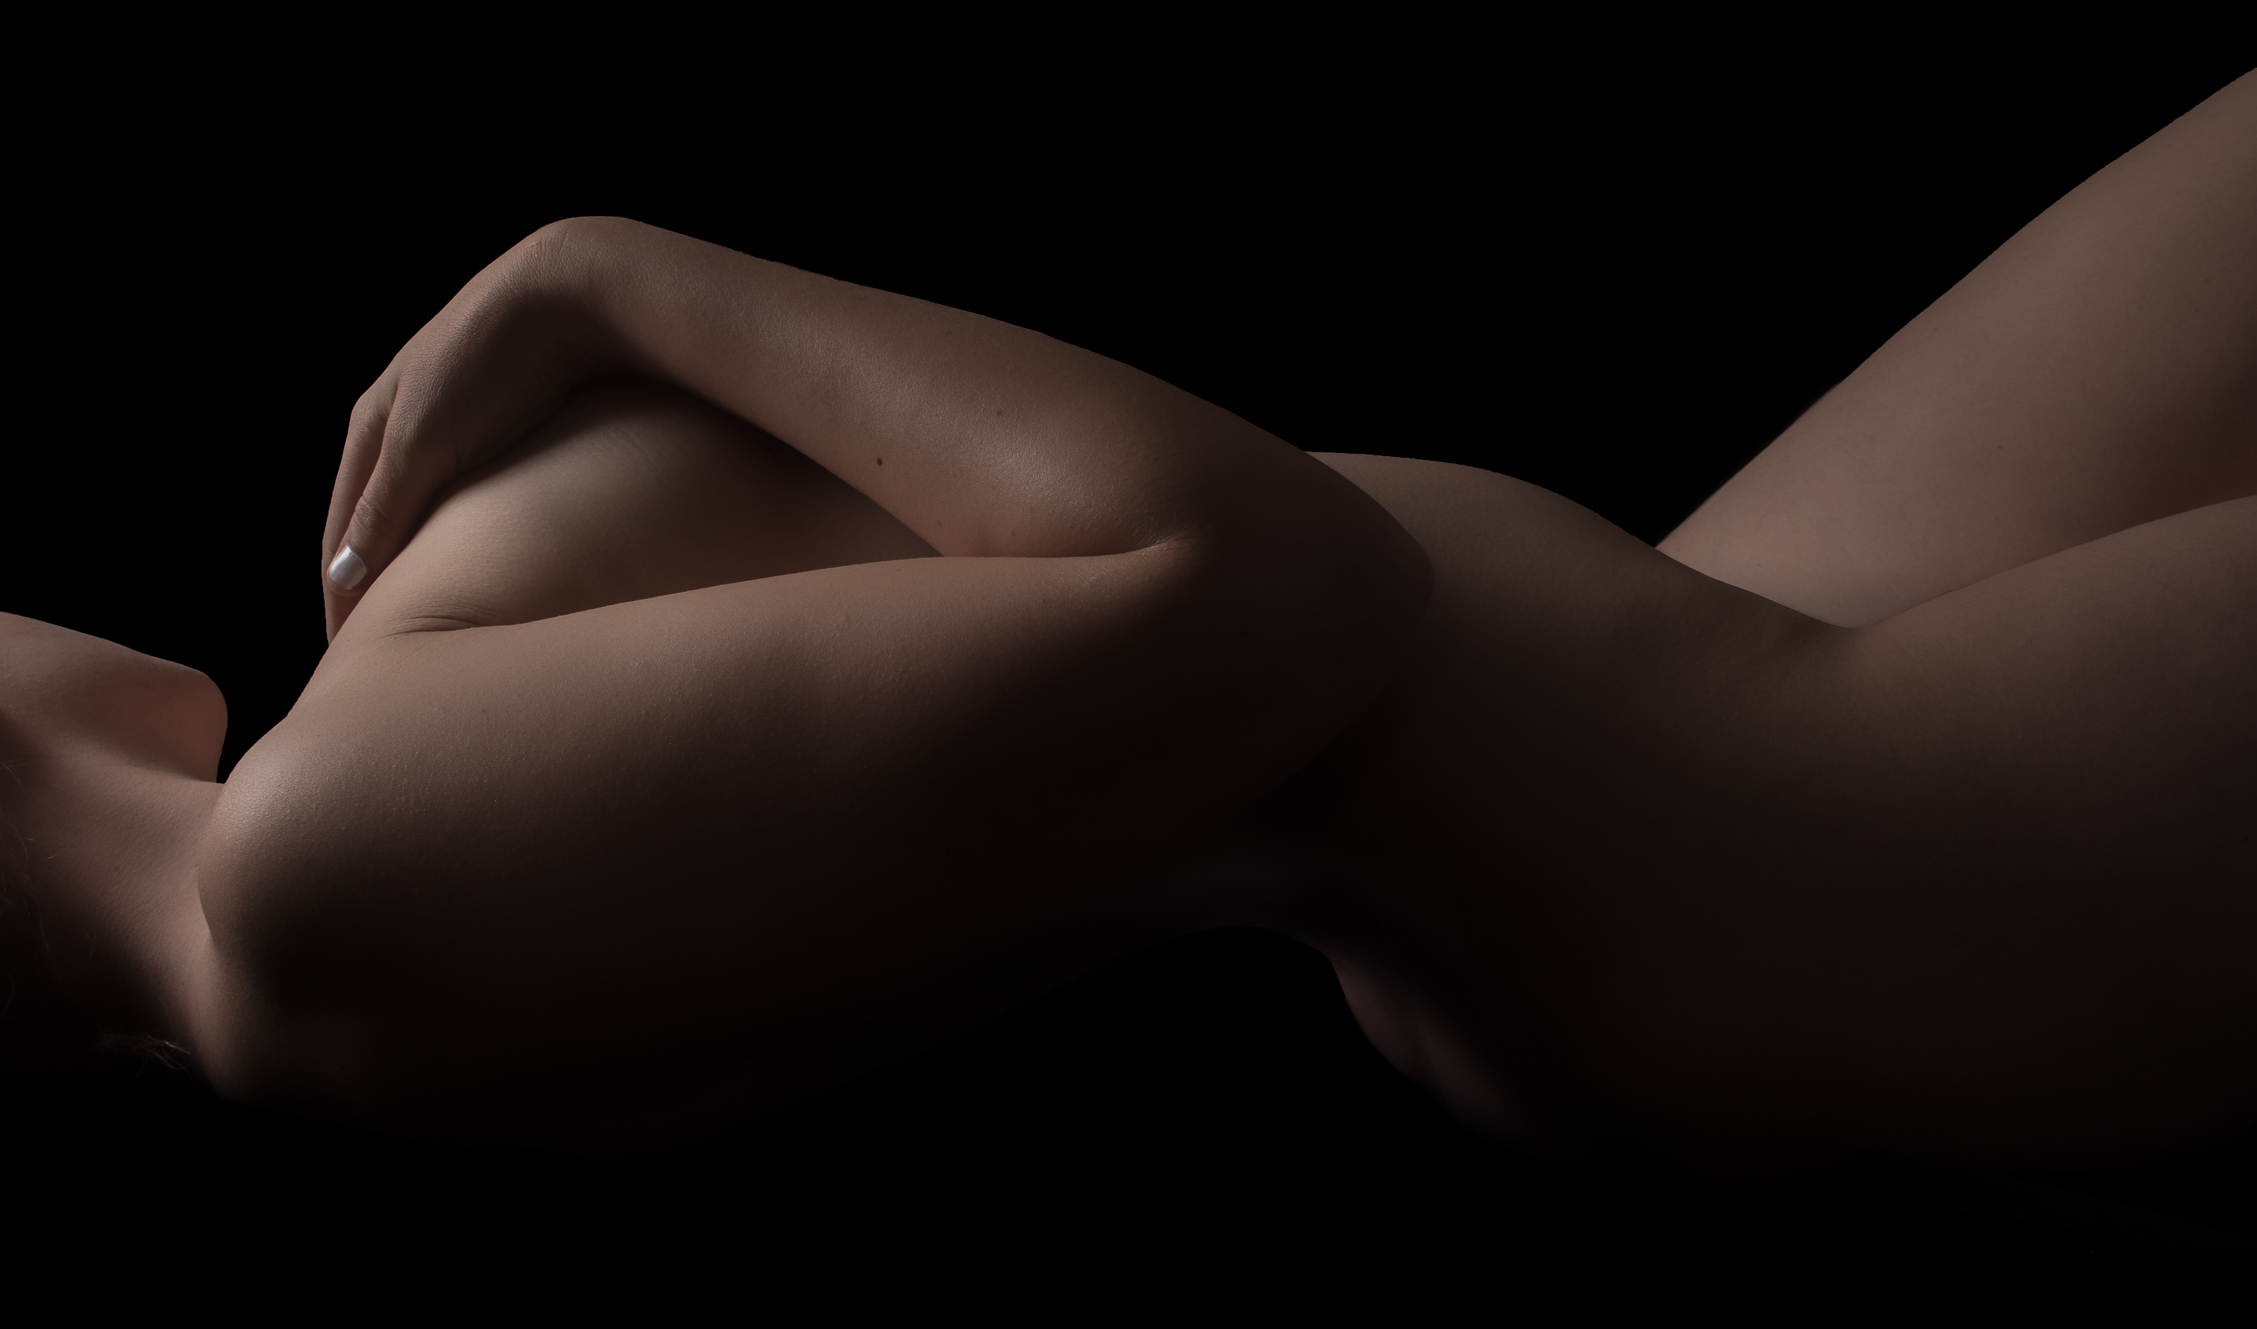 bodyscapes-9.jpg